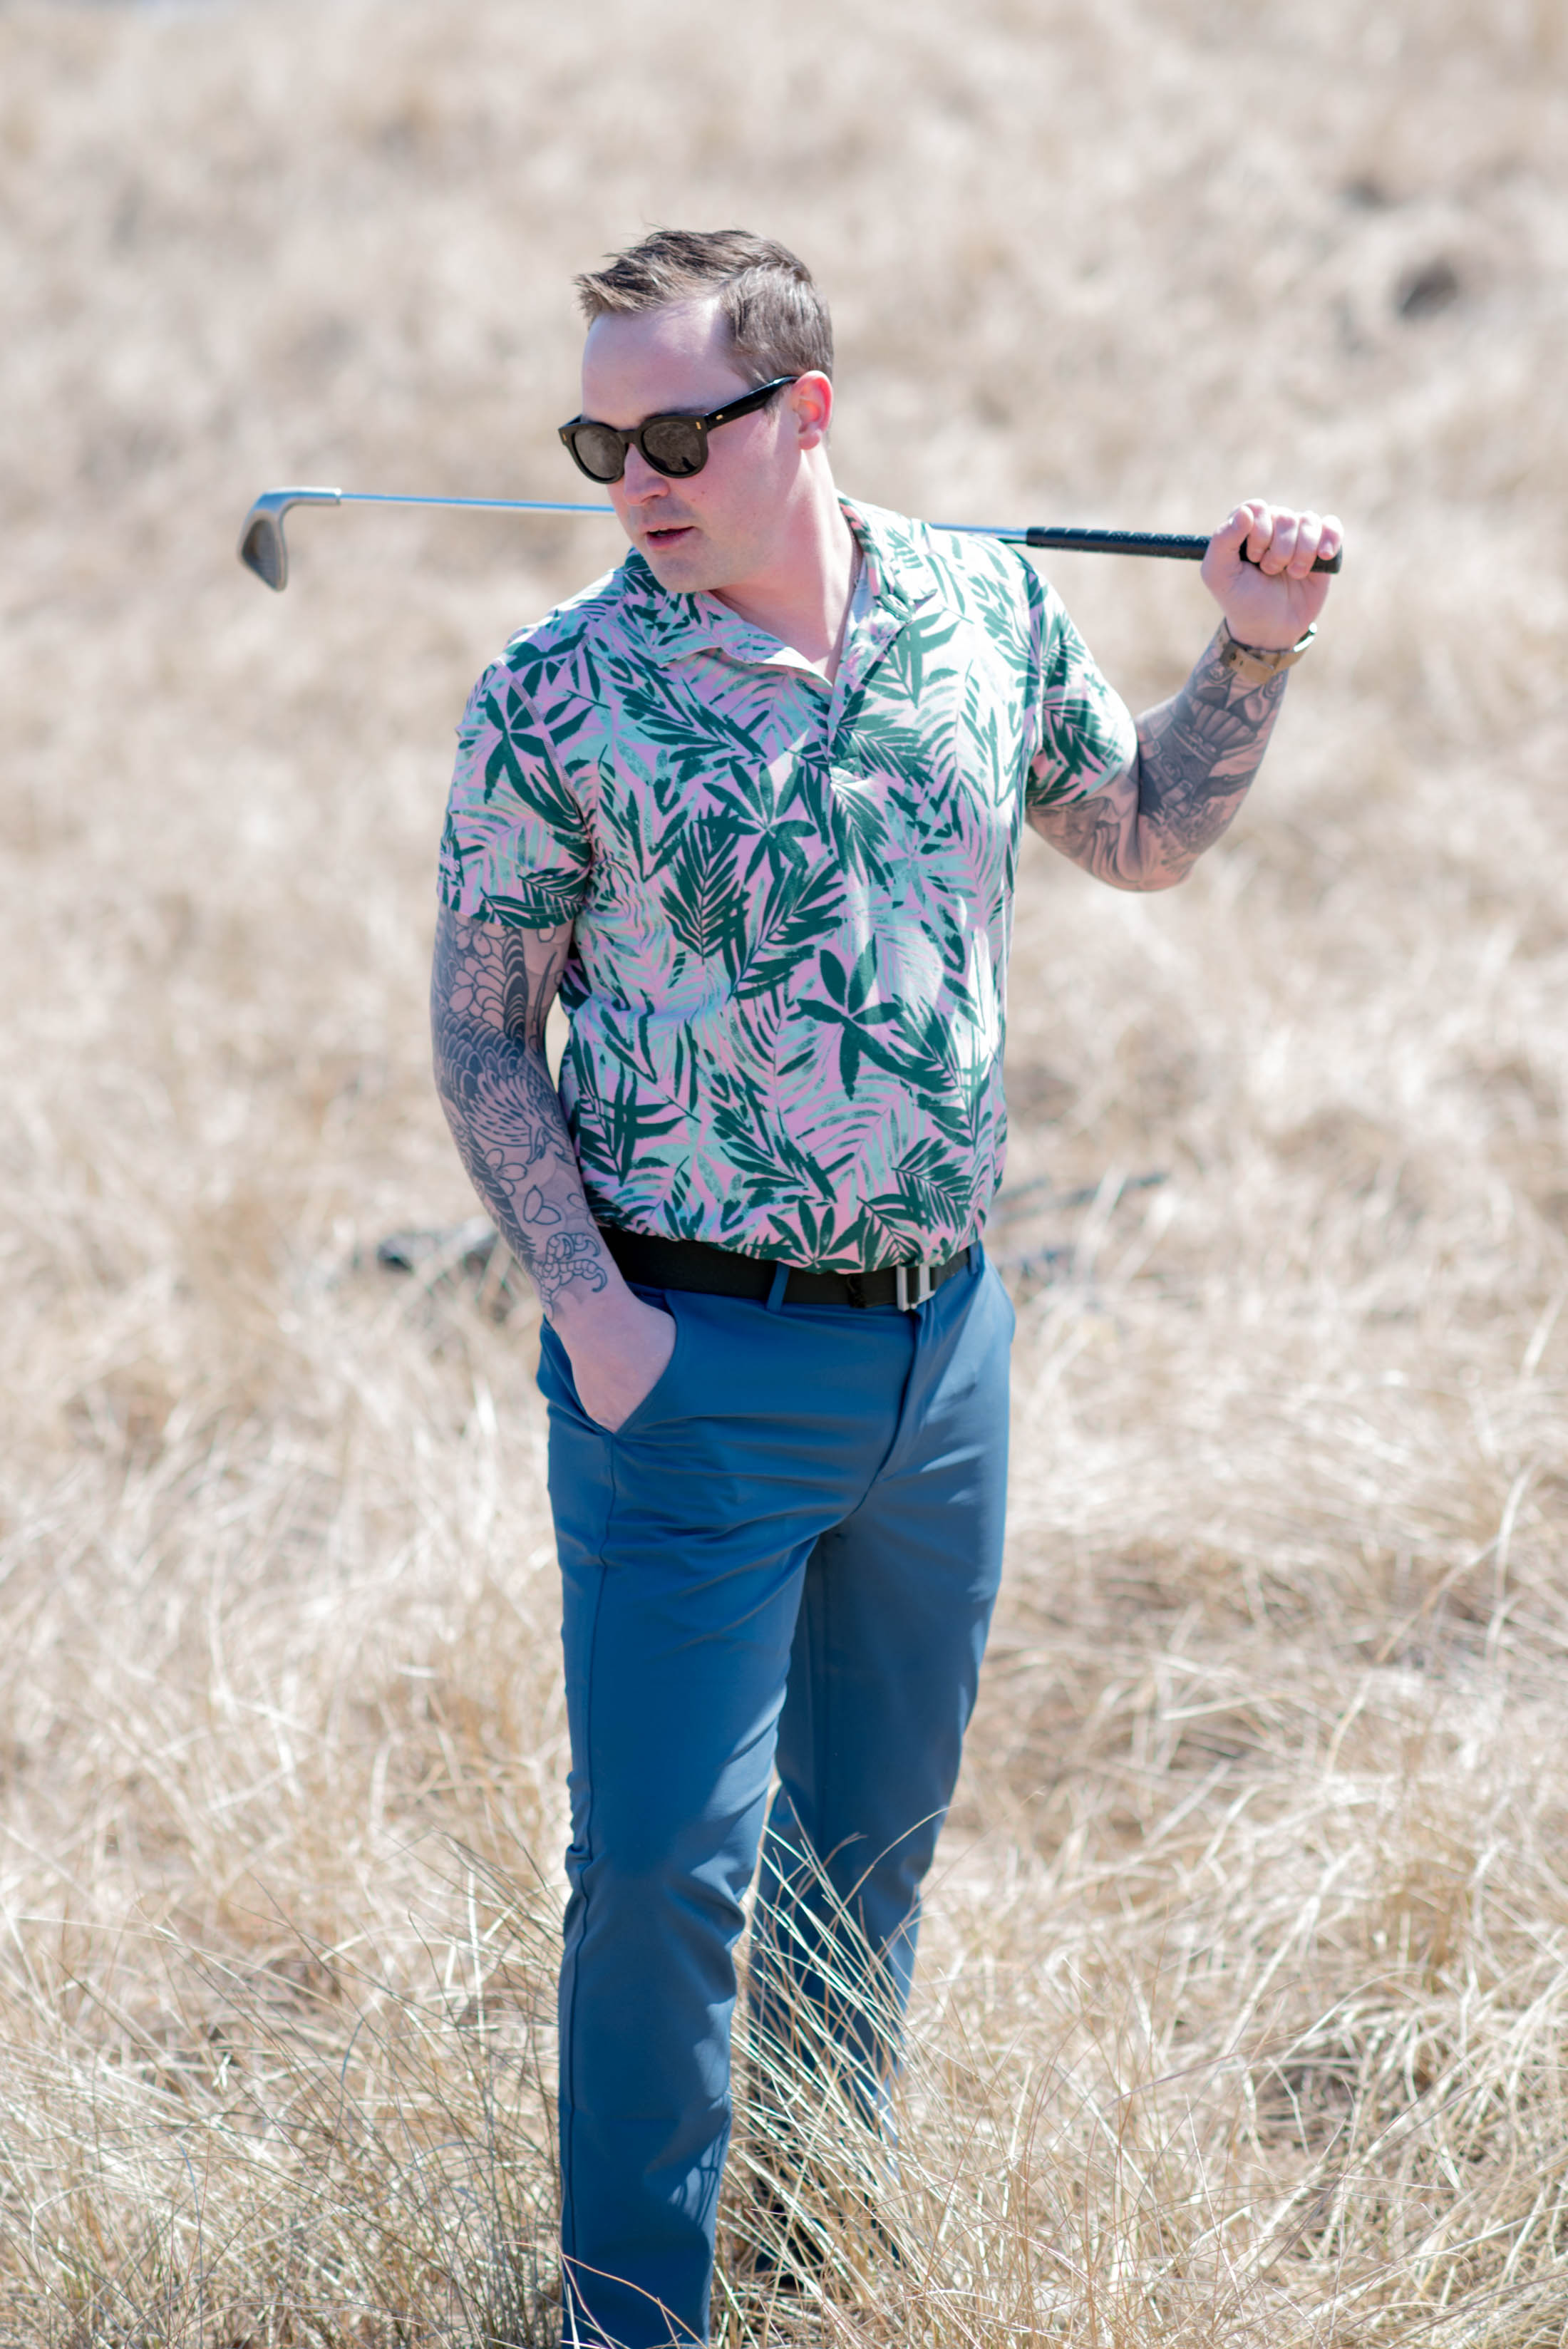 It's all fun & games on the golf course until someone's uncomfortable. Golf apparel for men has to be just right...so we're this round we're trying Bonobos.